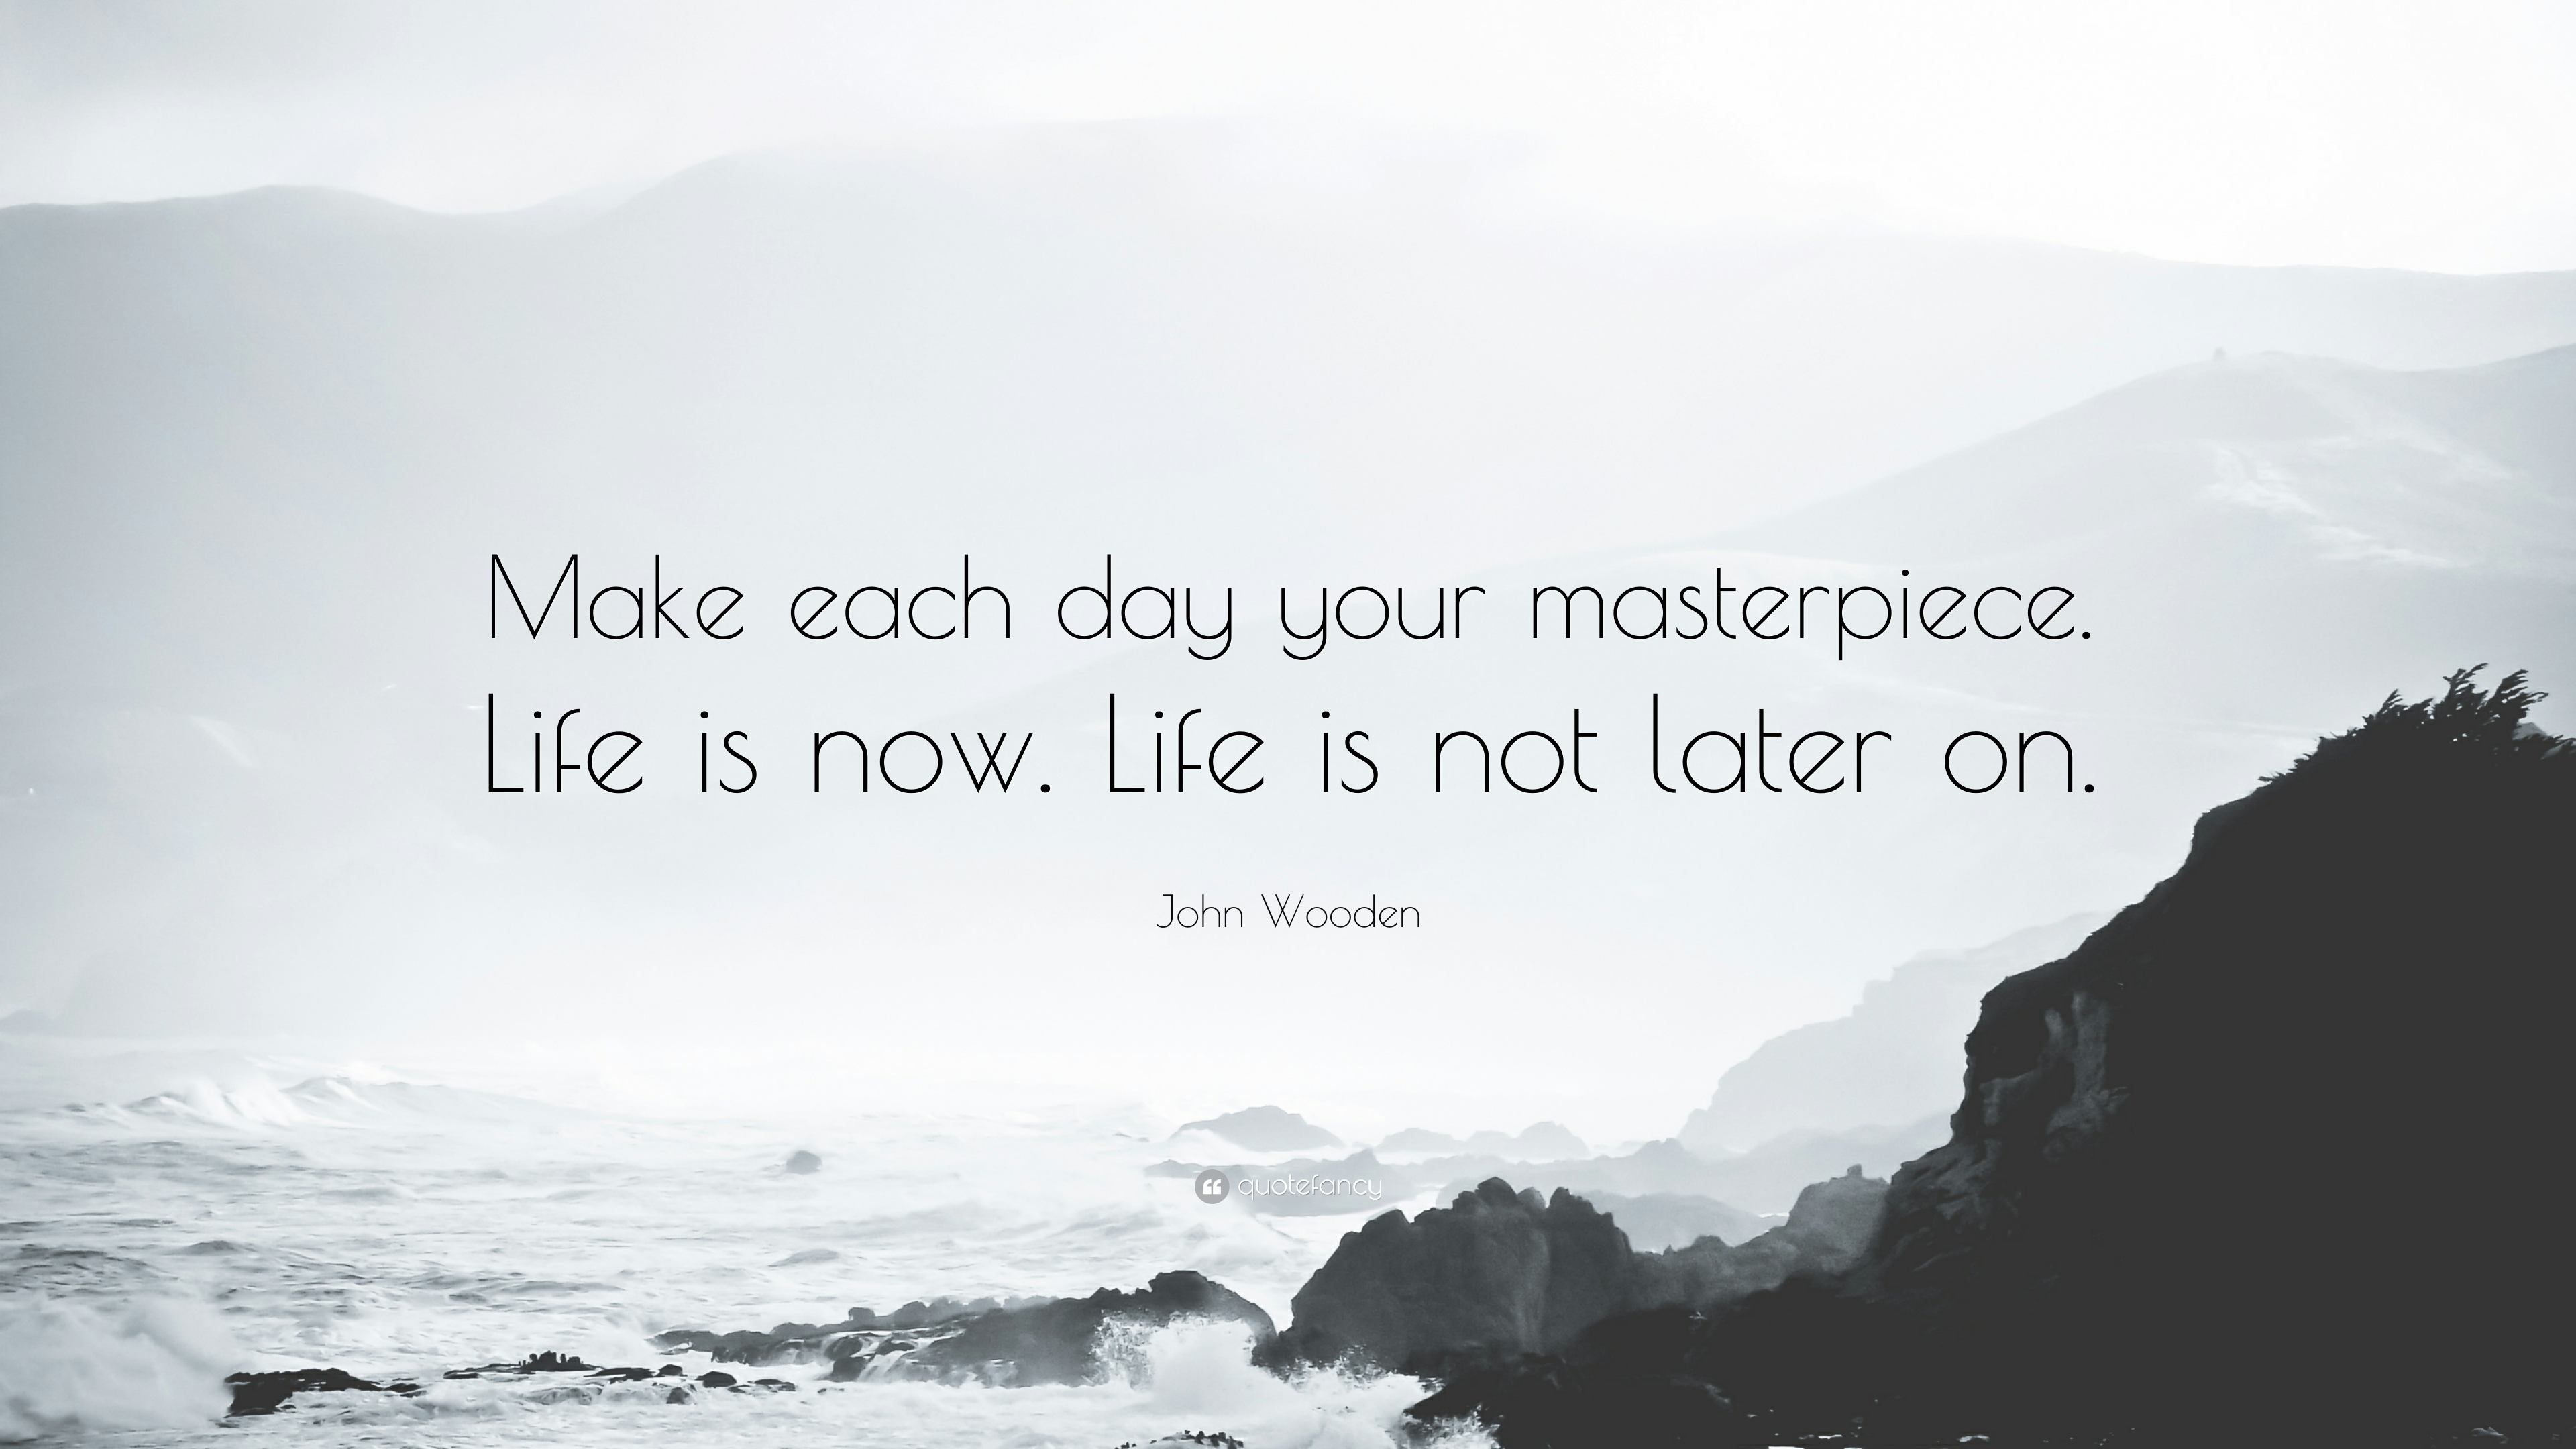 john wooden quote make each day your masterpiece life is now